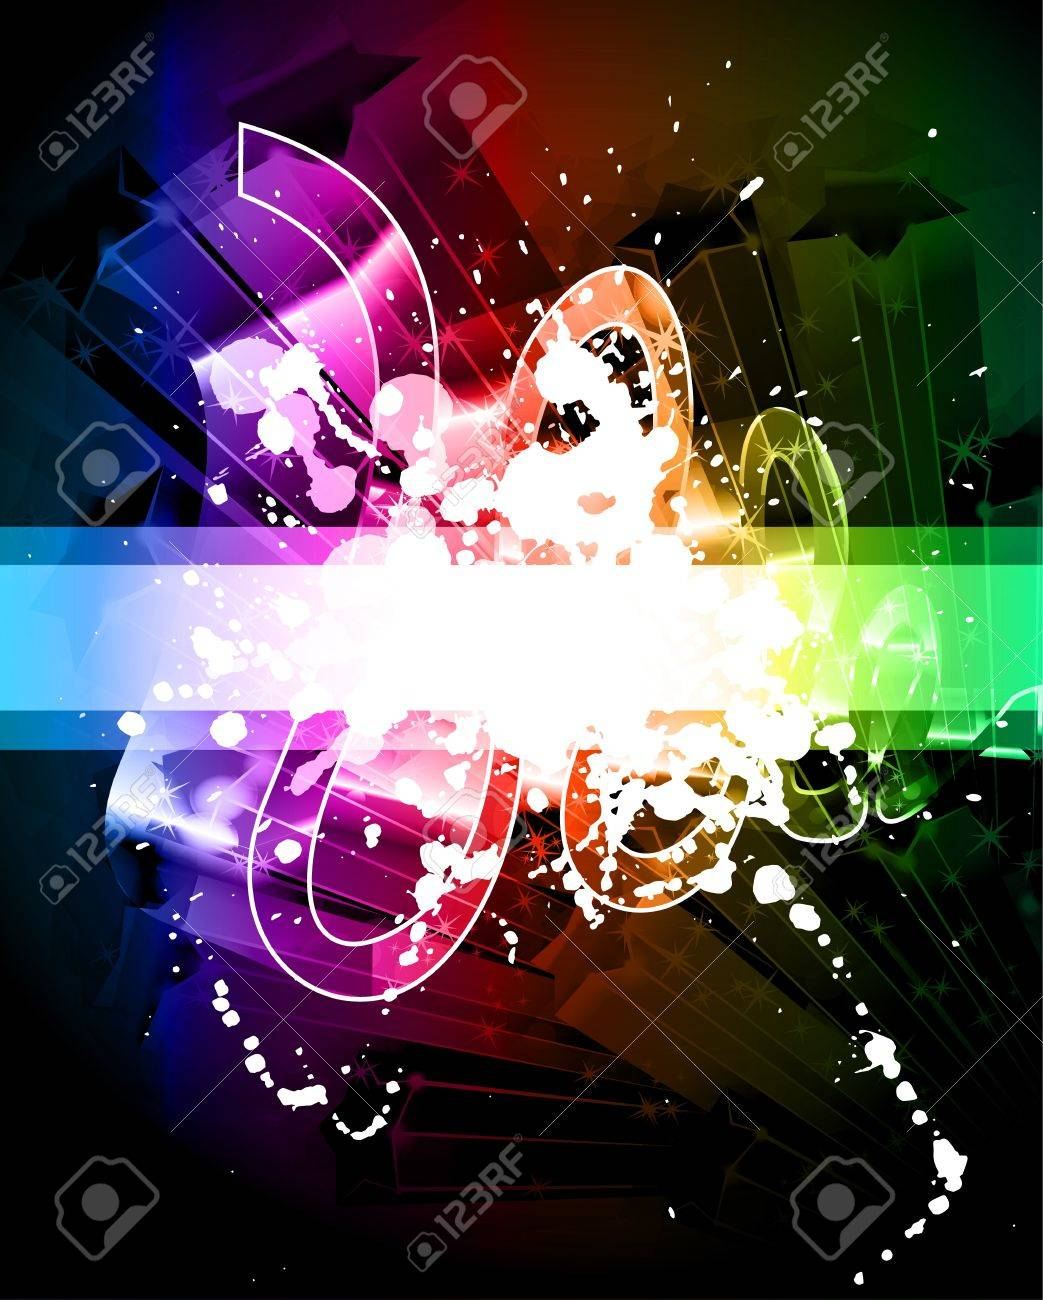 Artistic Grunge Abstract Background with Rainbow Colours Stock Vector - 8002062